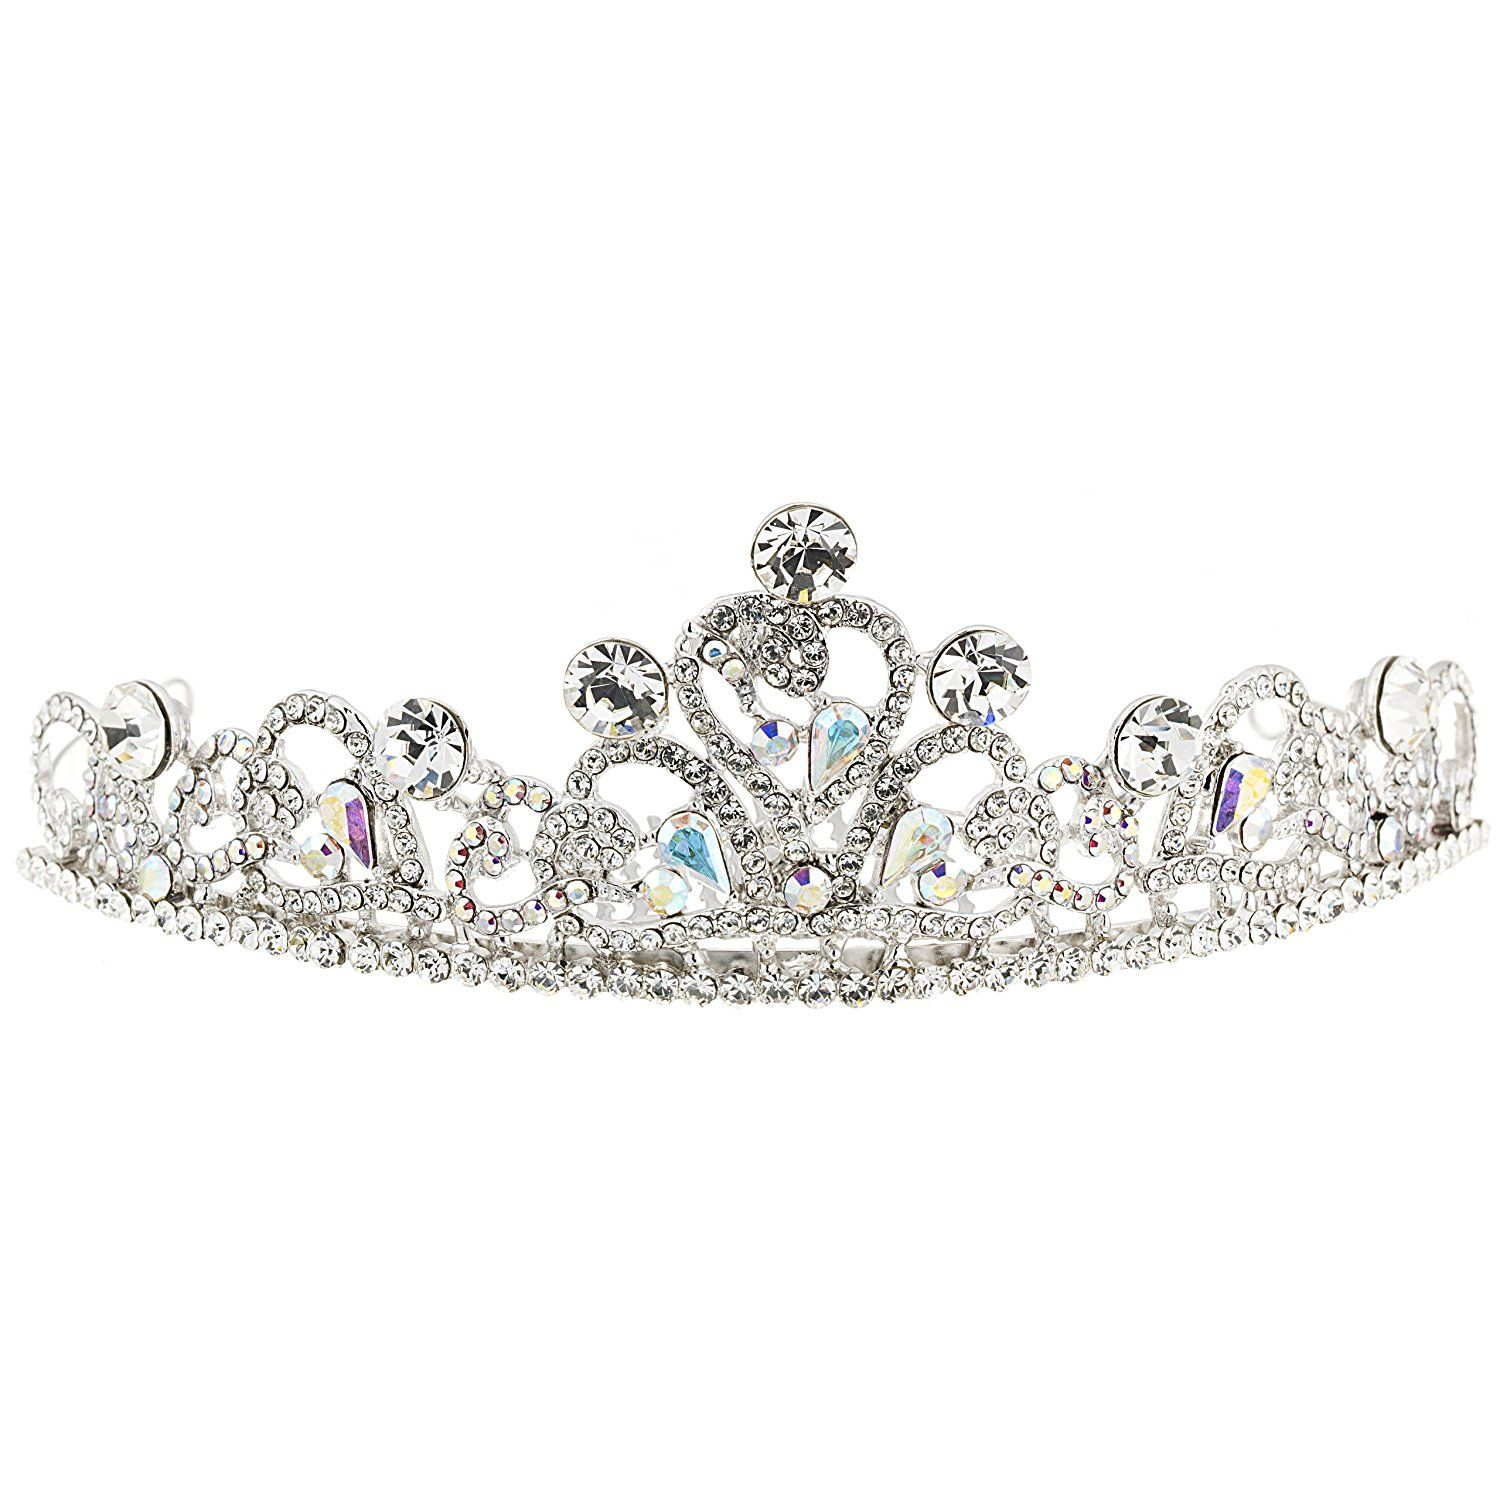 95f5960f7aac Gemini London Jewellery s Swarovski Crystal Heart Swirl Tiara with AB and  Clear White Swarovski Crystals